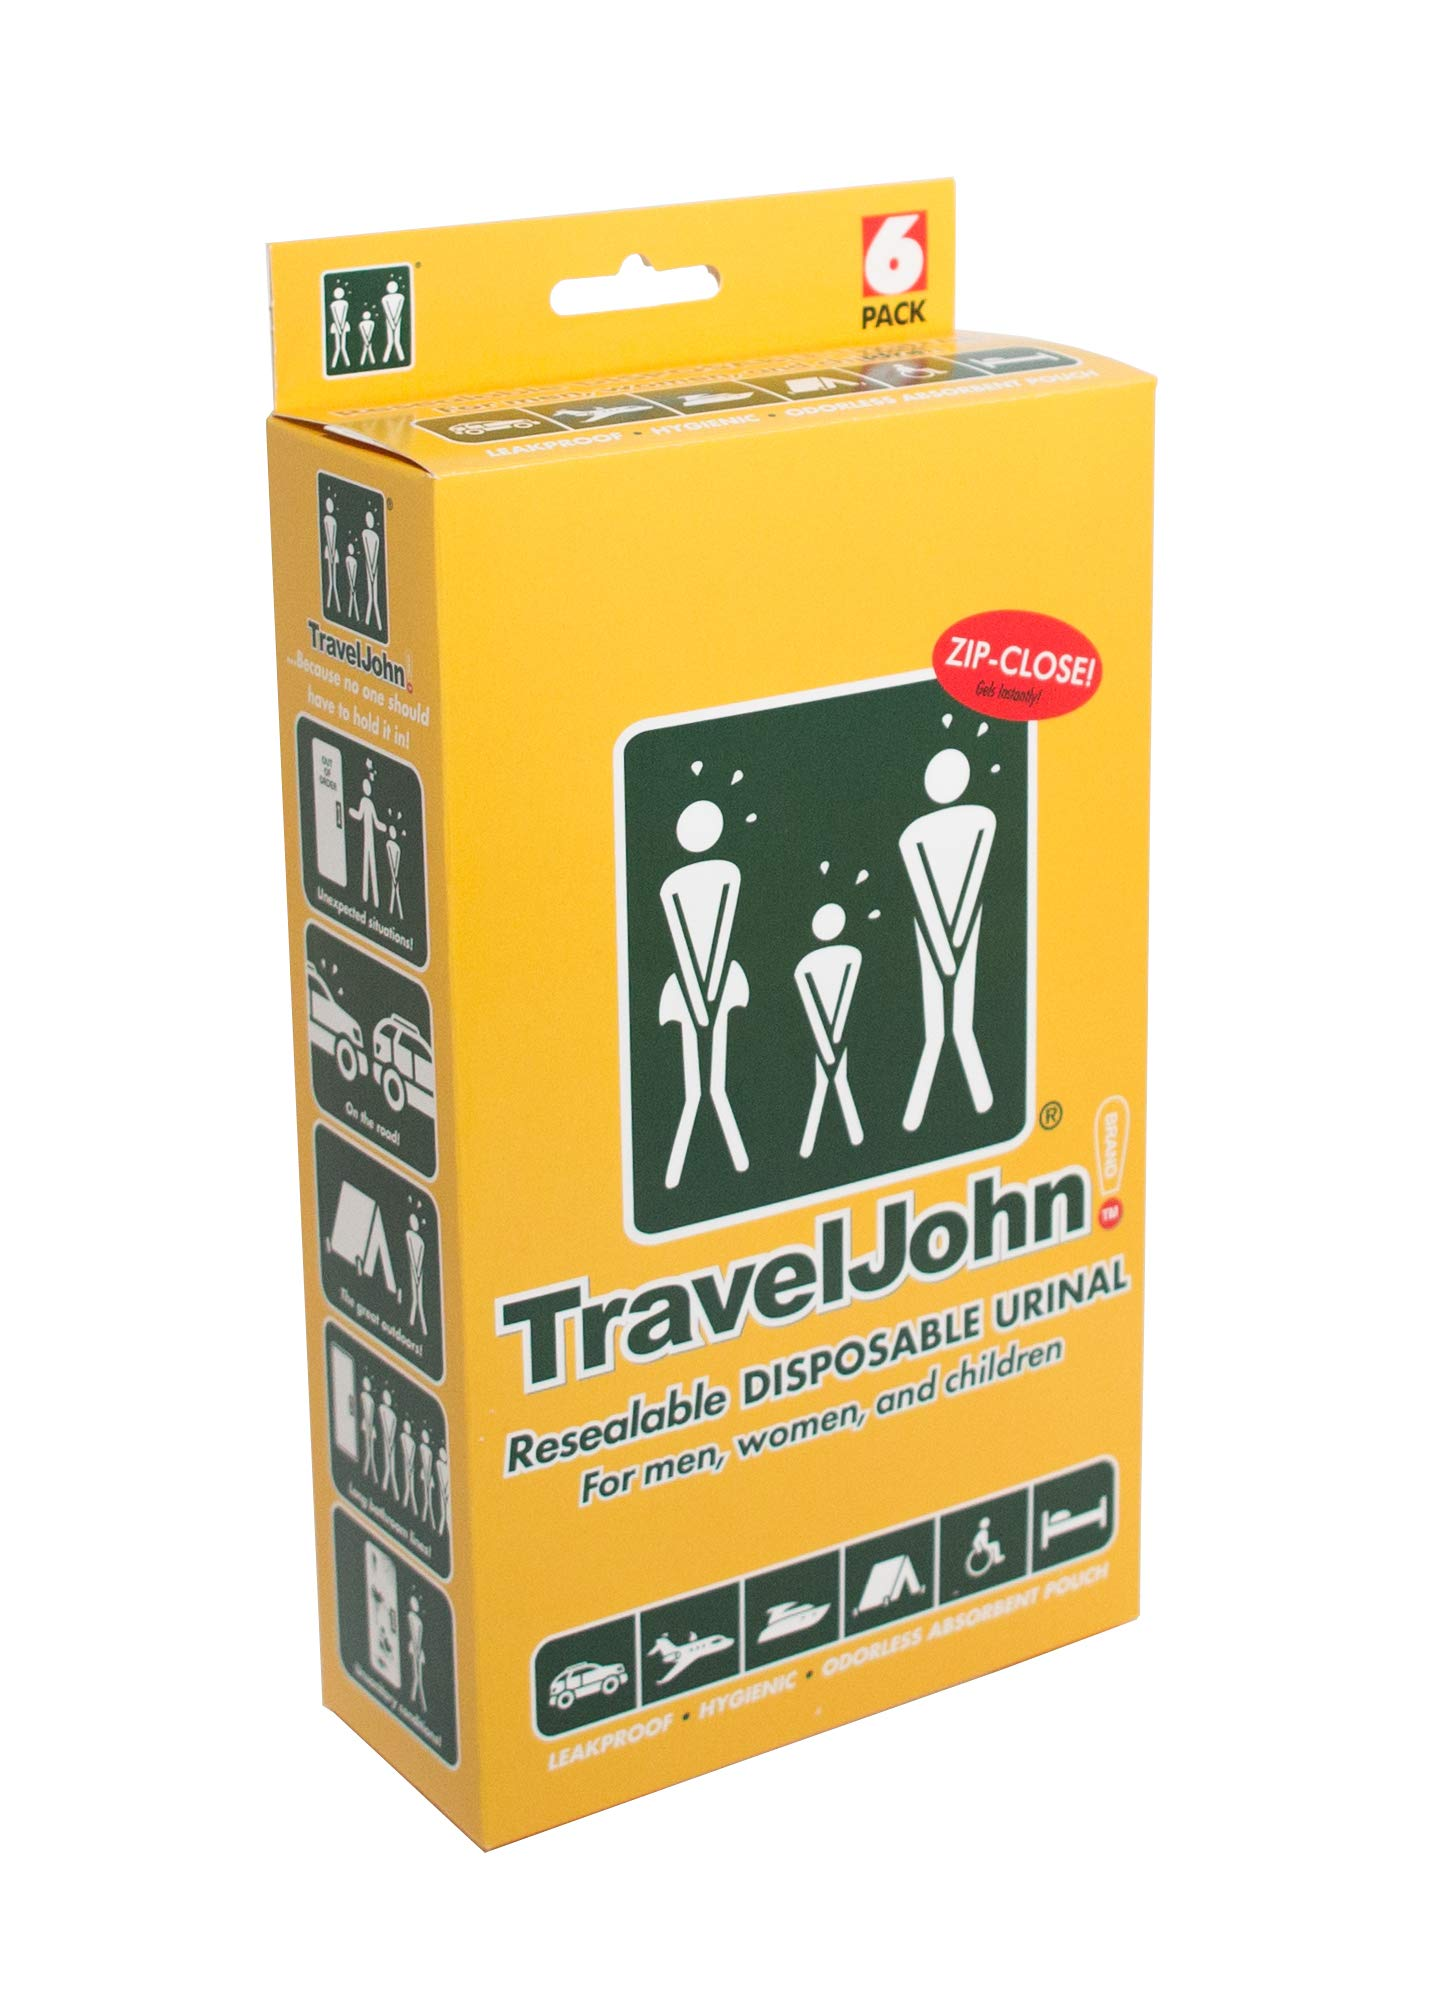 Travel John Resealable Disposable Urinal Bags (TJ1N) - 6 Pack